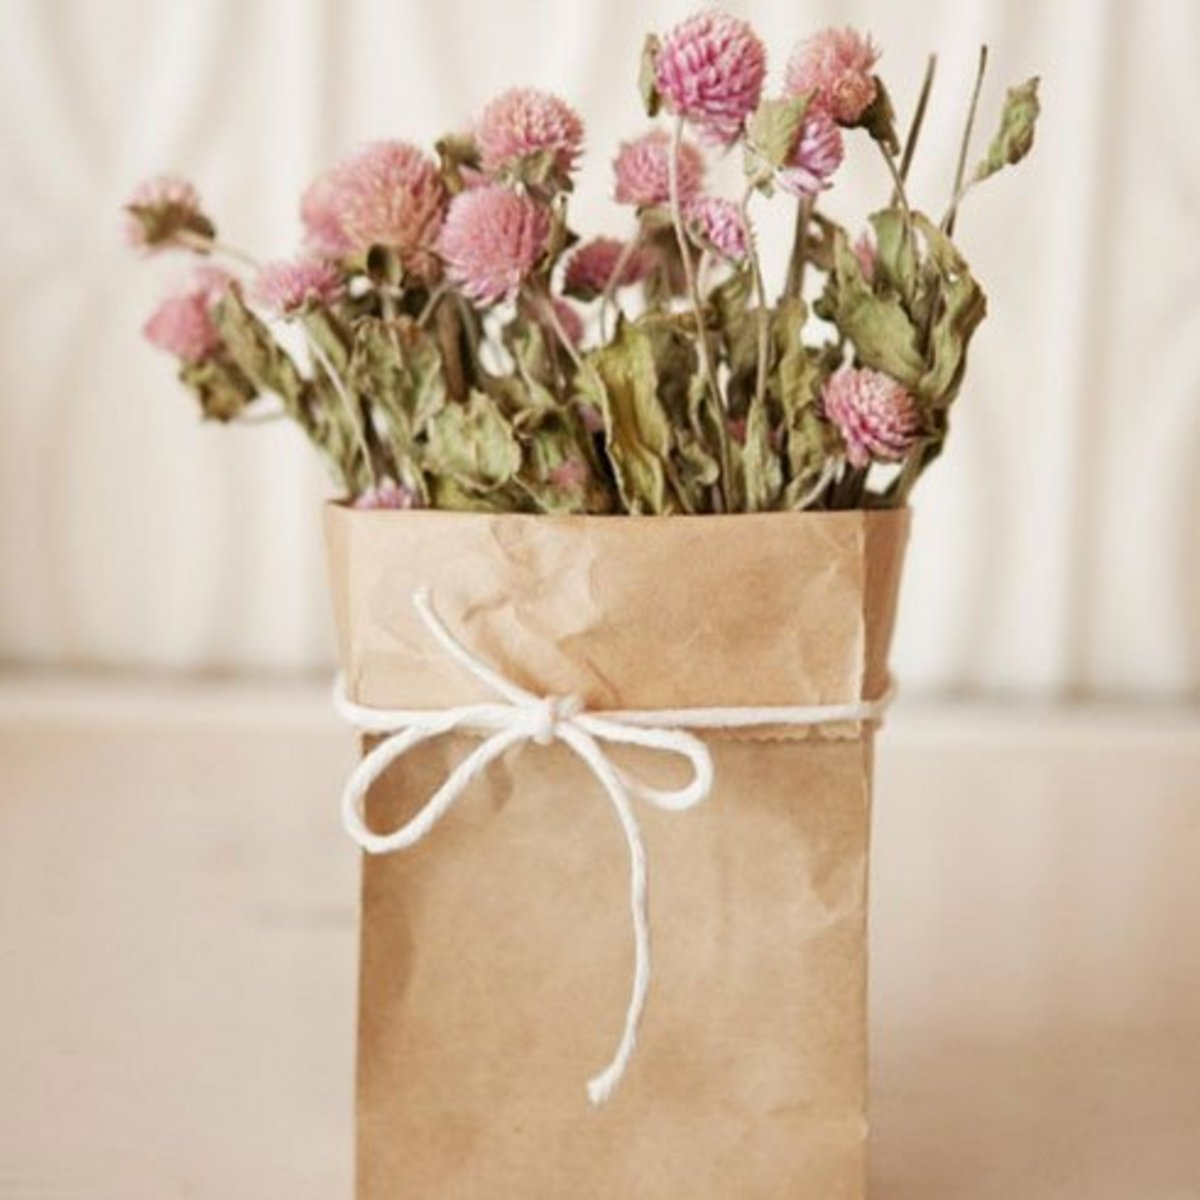 DIY Wedding Table Decoration Ideas | Paper Bag Vase